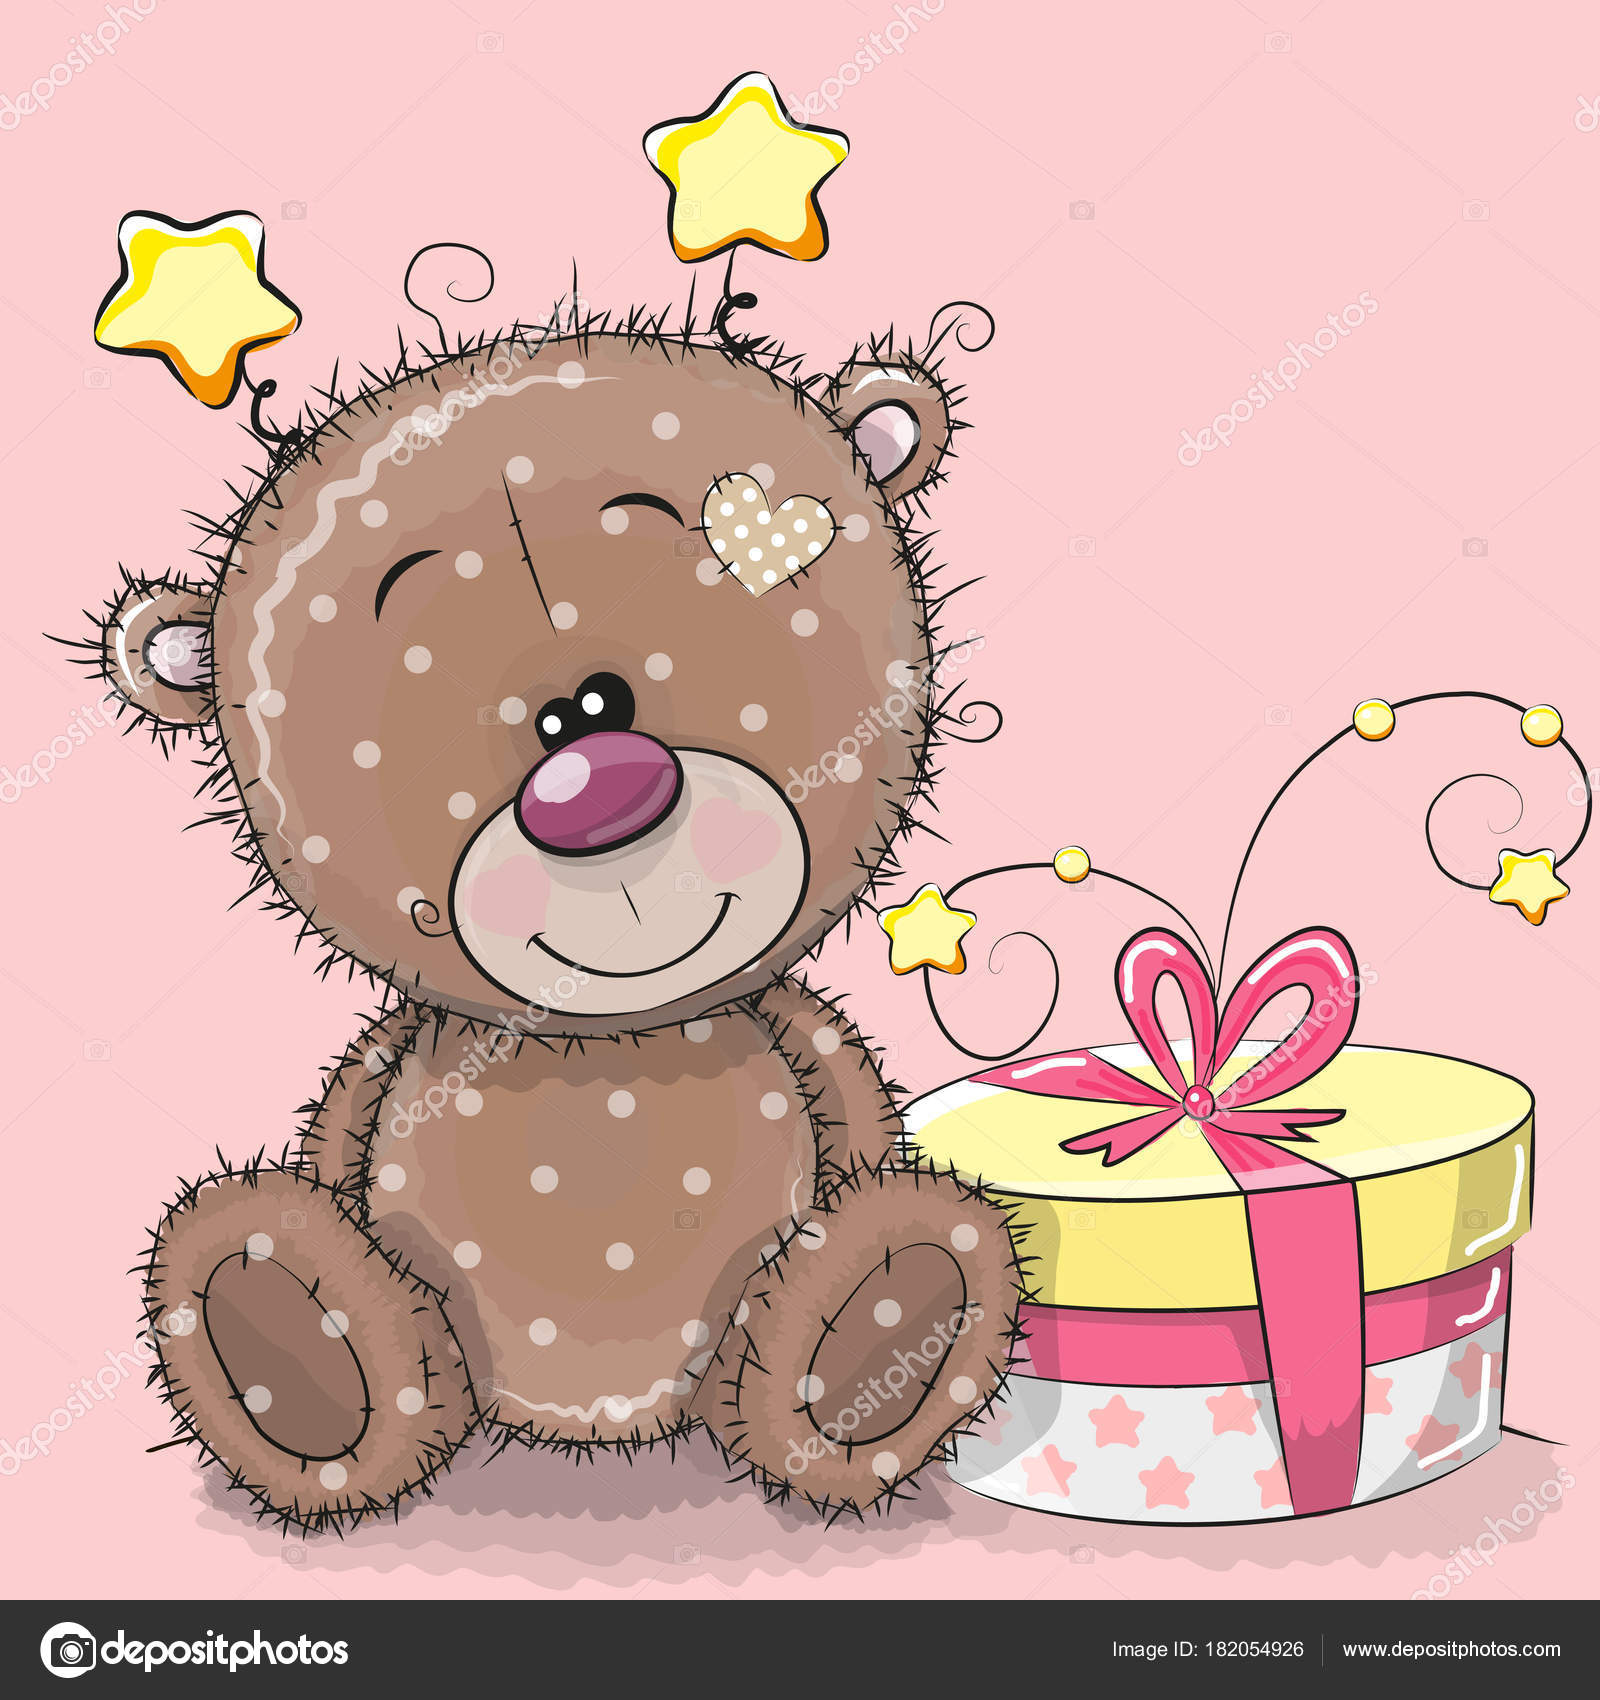 Greeting Card Cute Teddy Bear With Gift Stock Vector C Reginast777